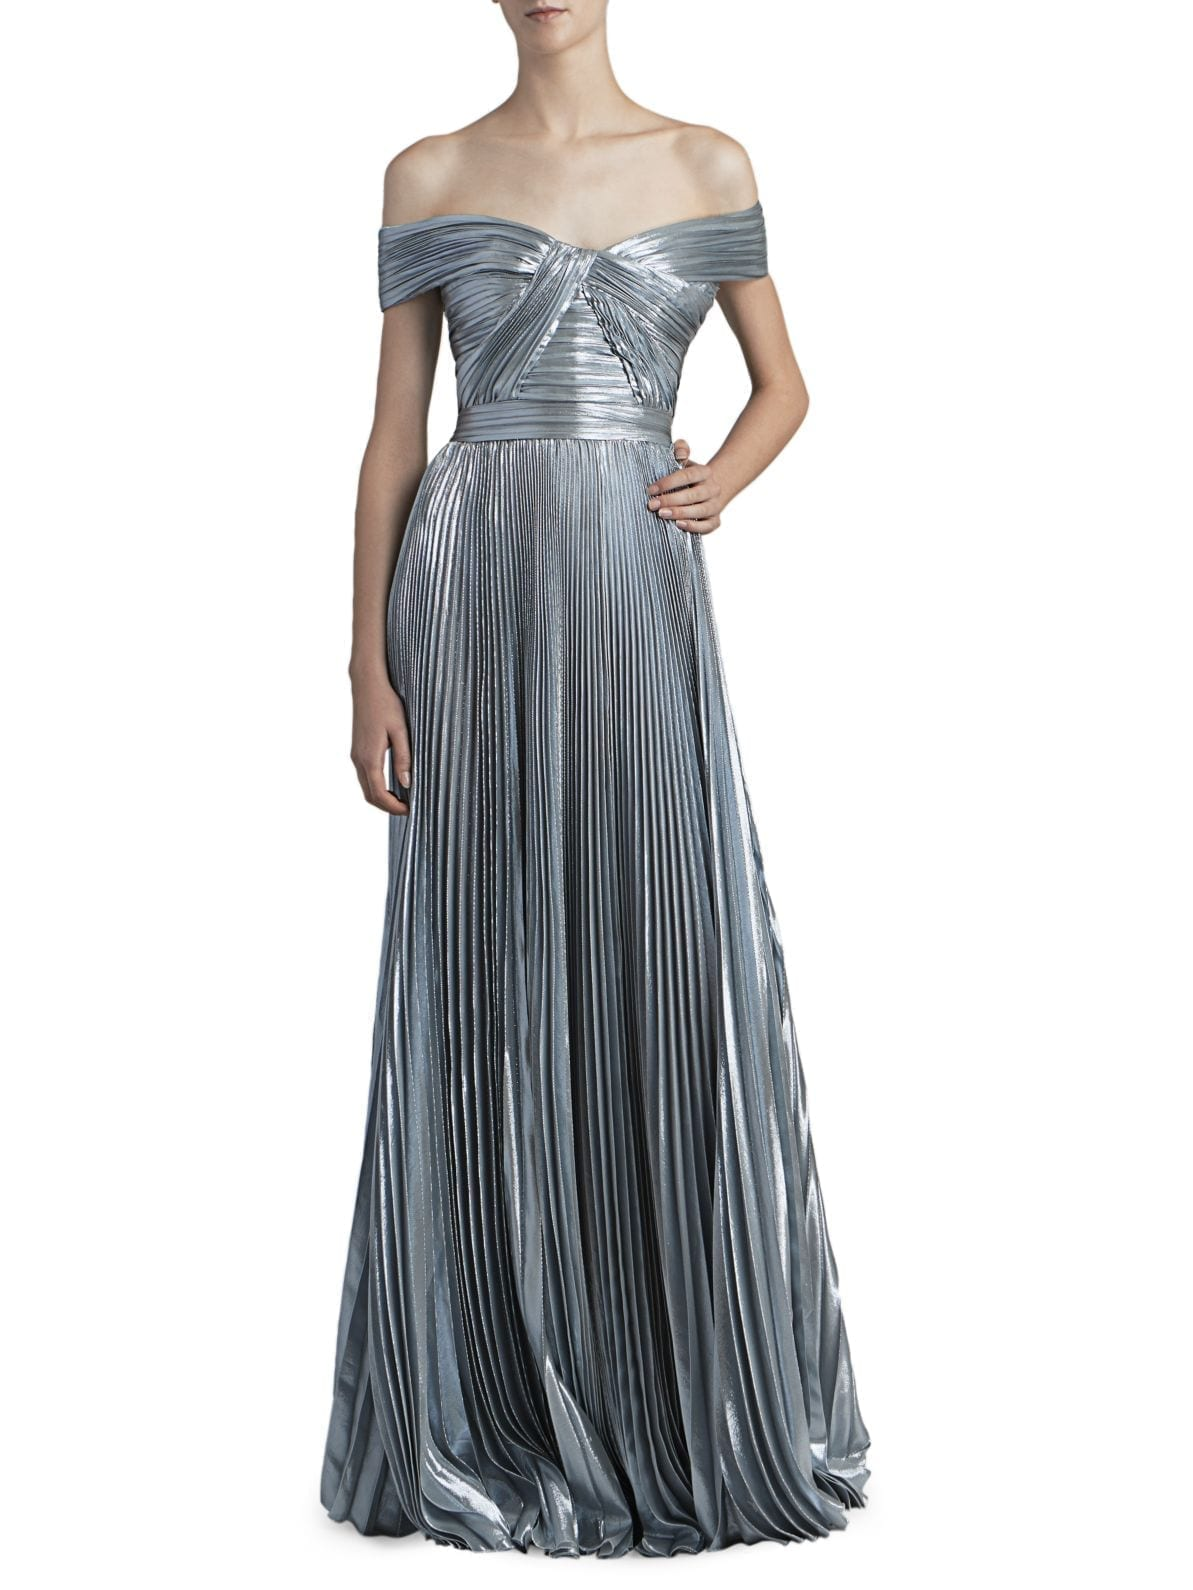 ZUHAIR MURAD Azdorado Off-The-Shoulder Plissé Gown